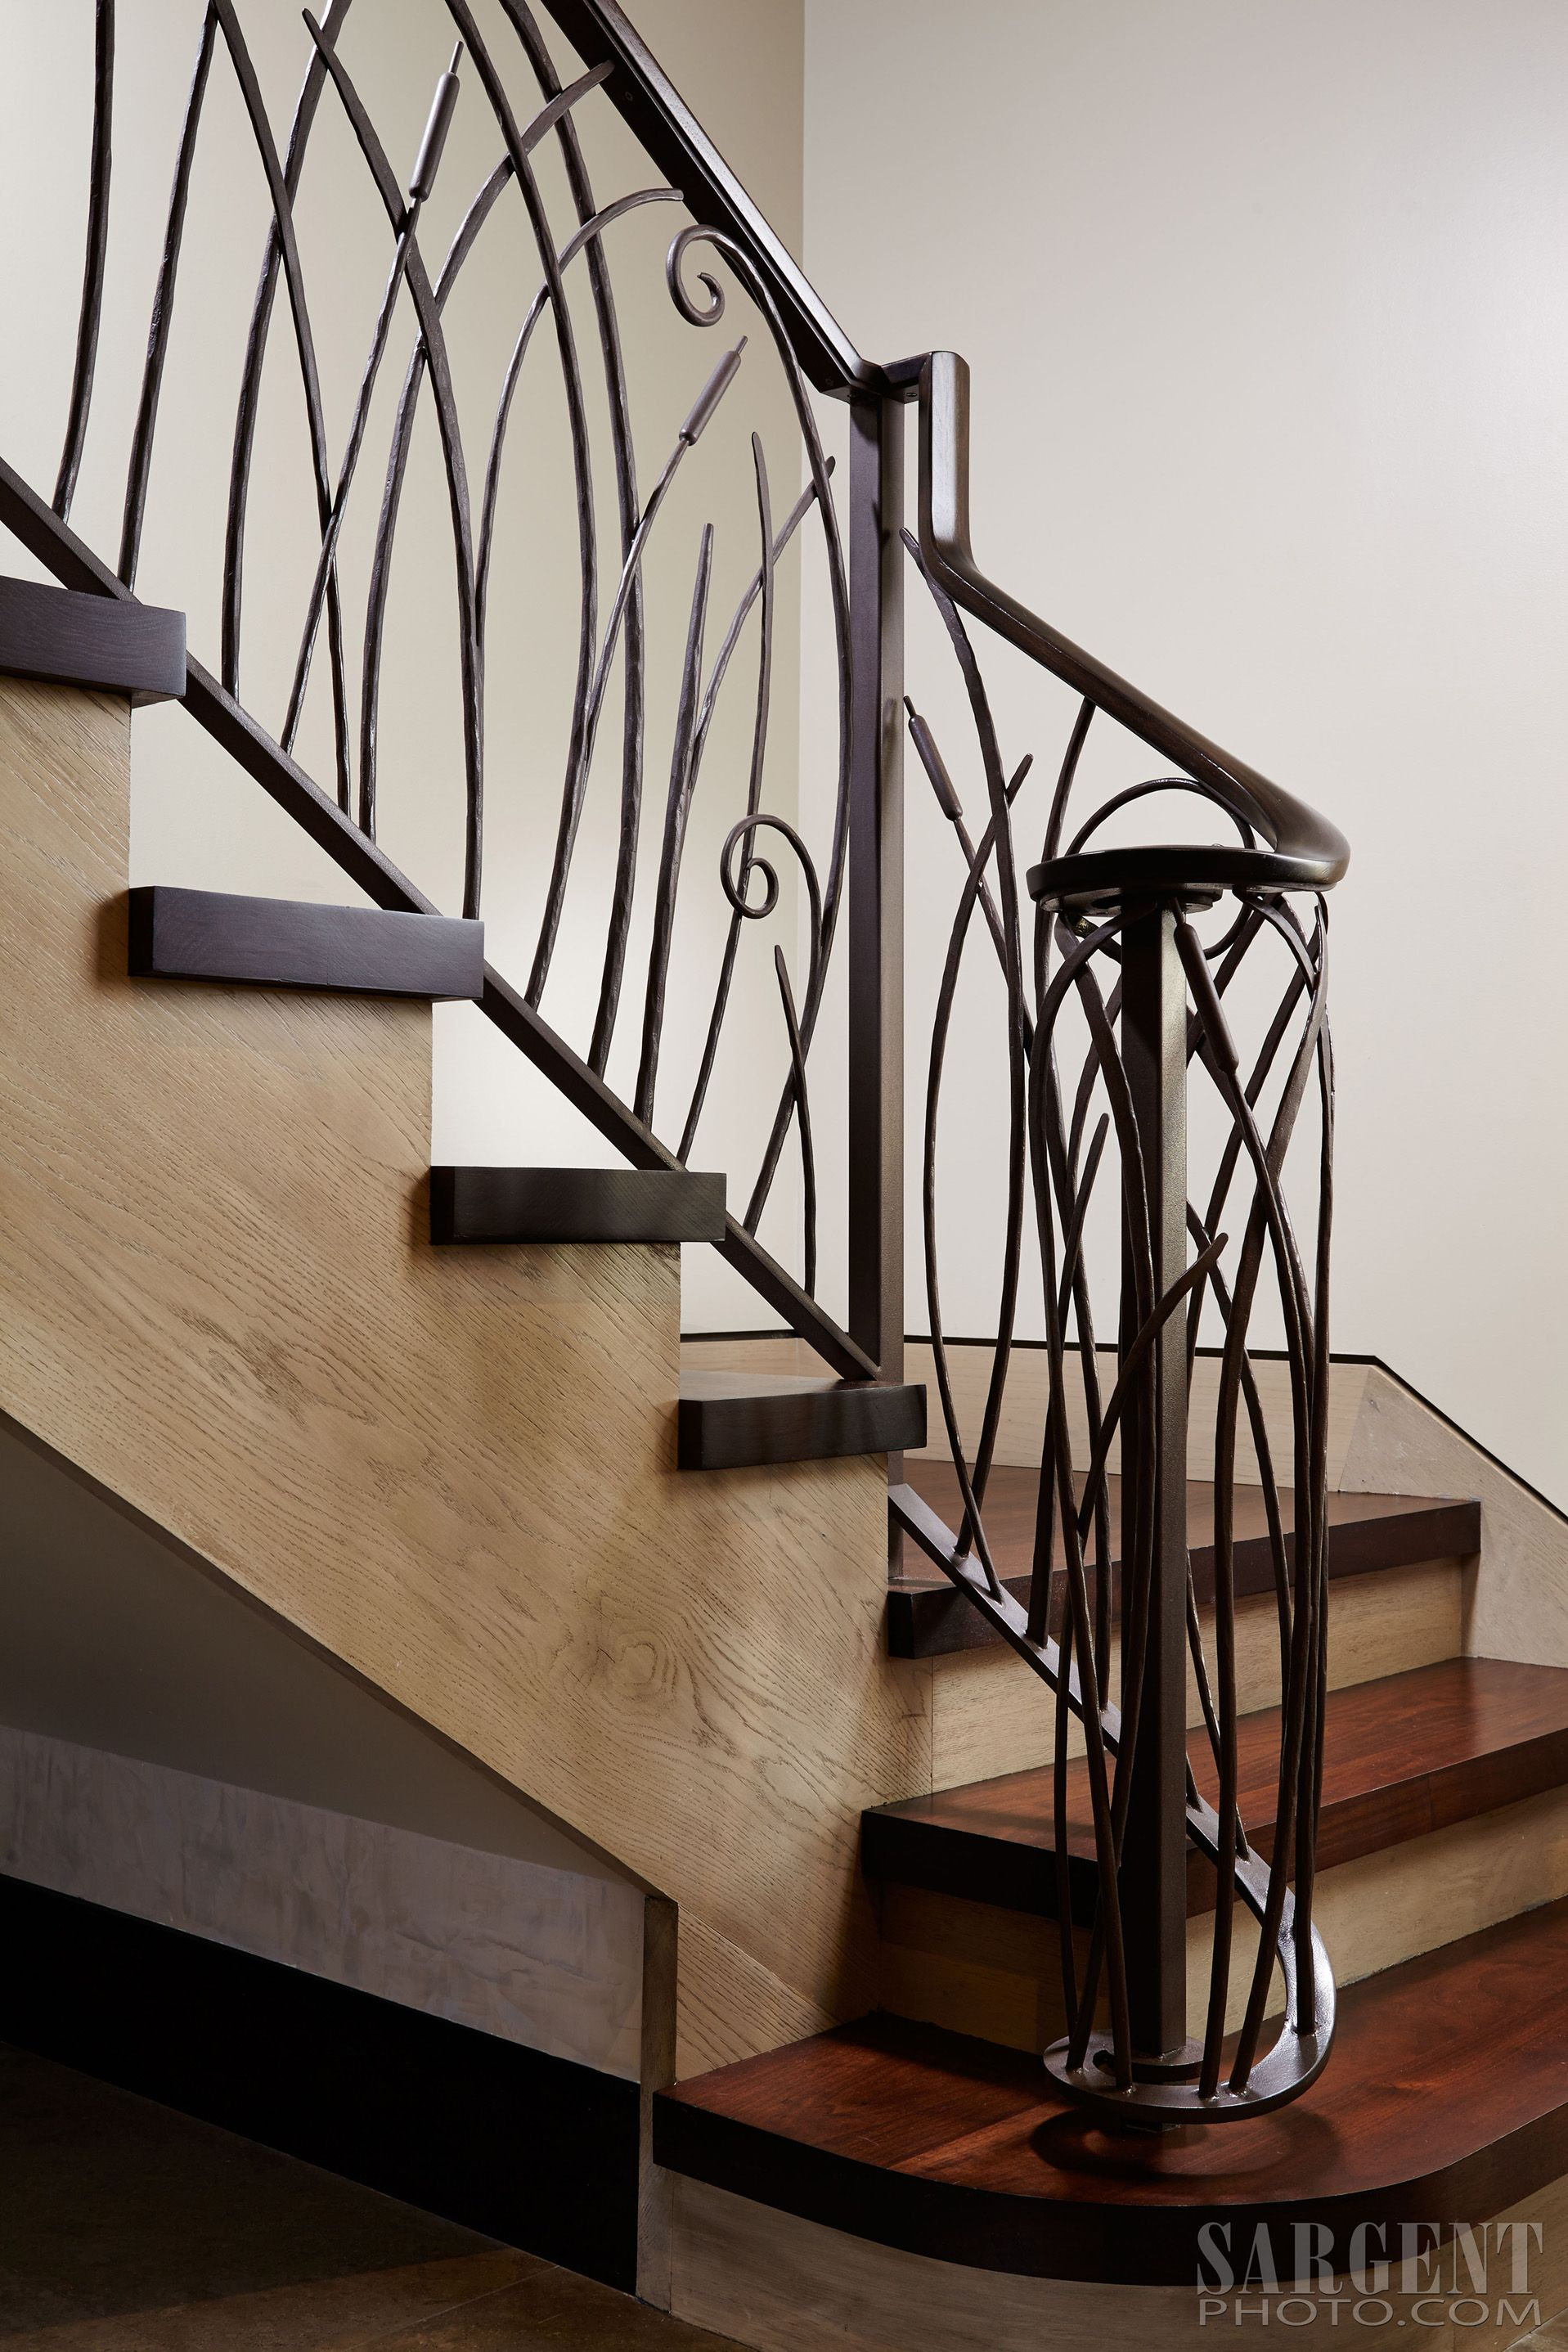 Custom Iron Stair Railing, Contemporary Cat Tail Stair Rail Design. Two  Toned Stairs,